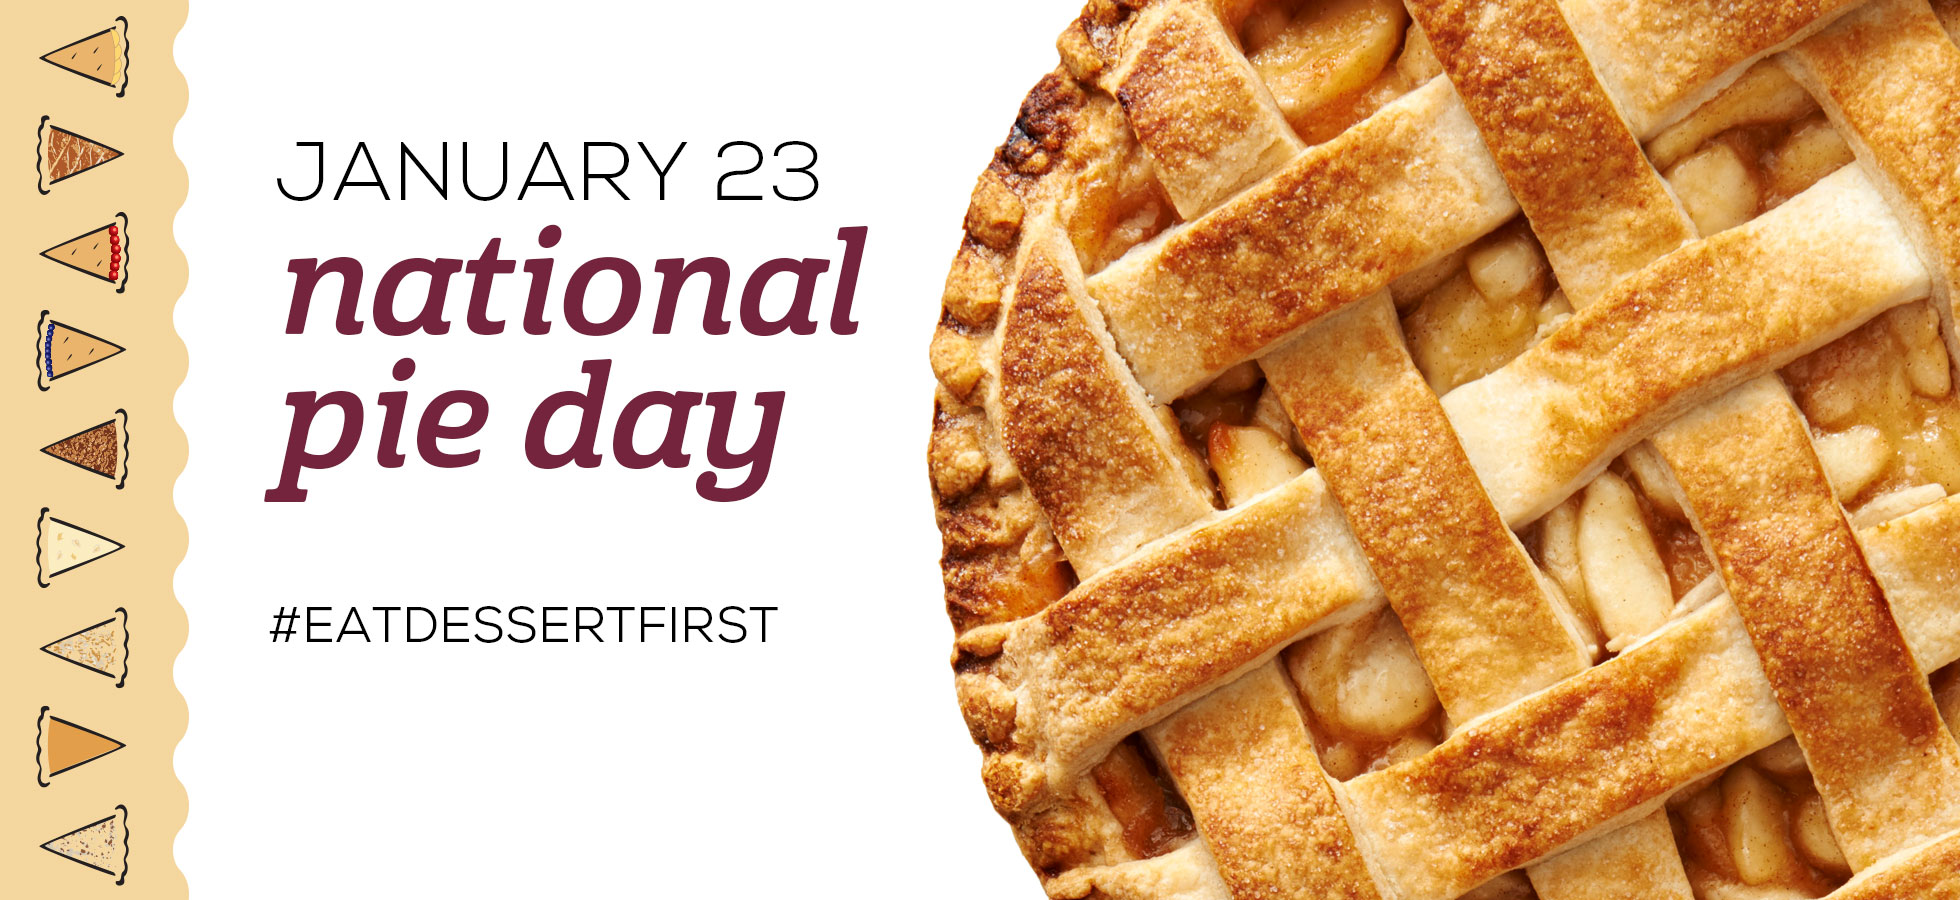 National Pie Day – January 23 – #EATDESSERTFIRST